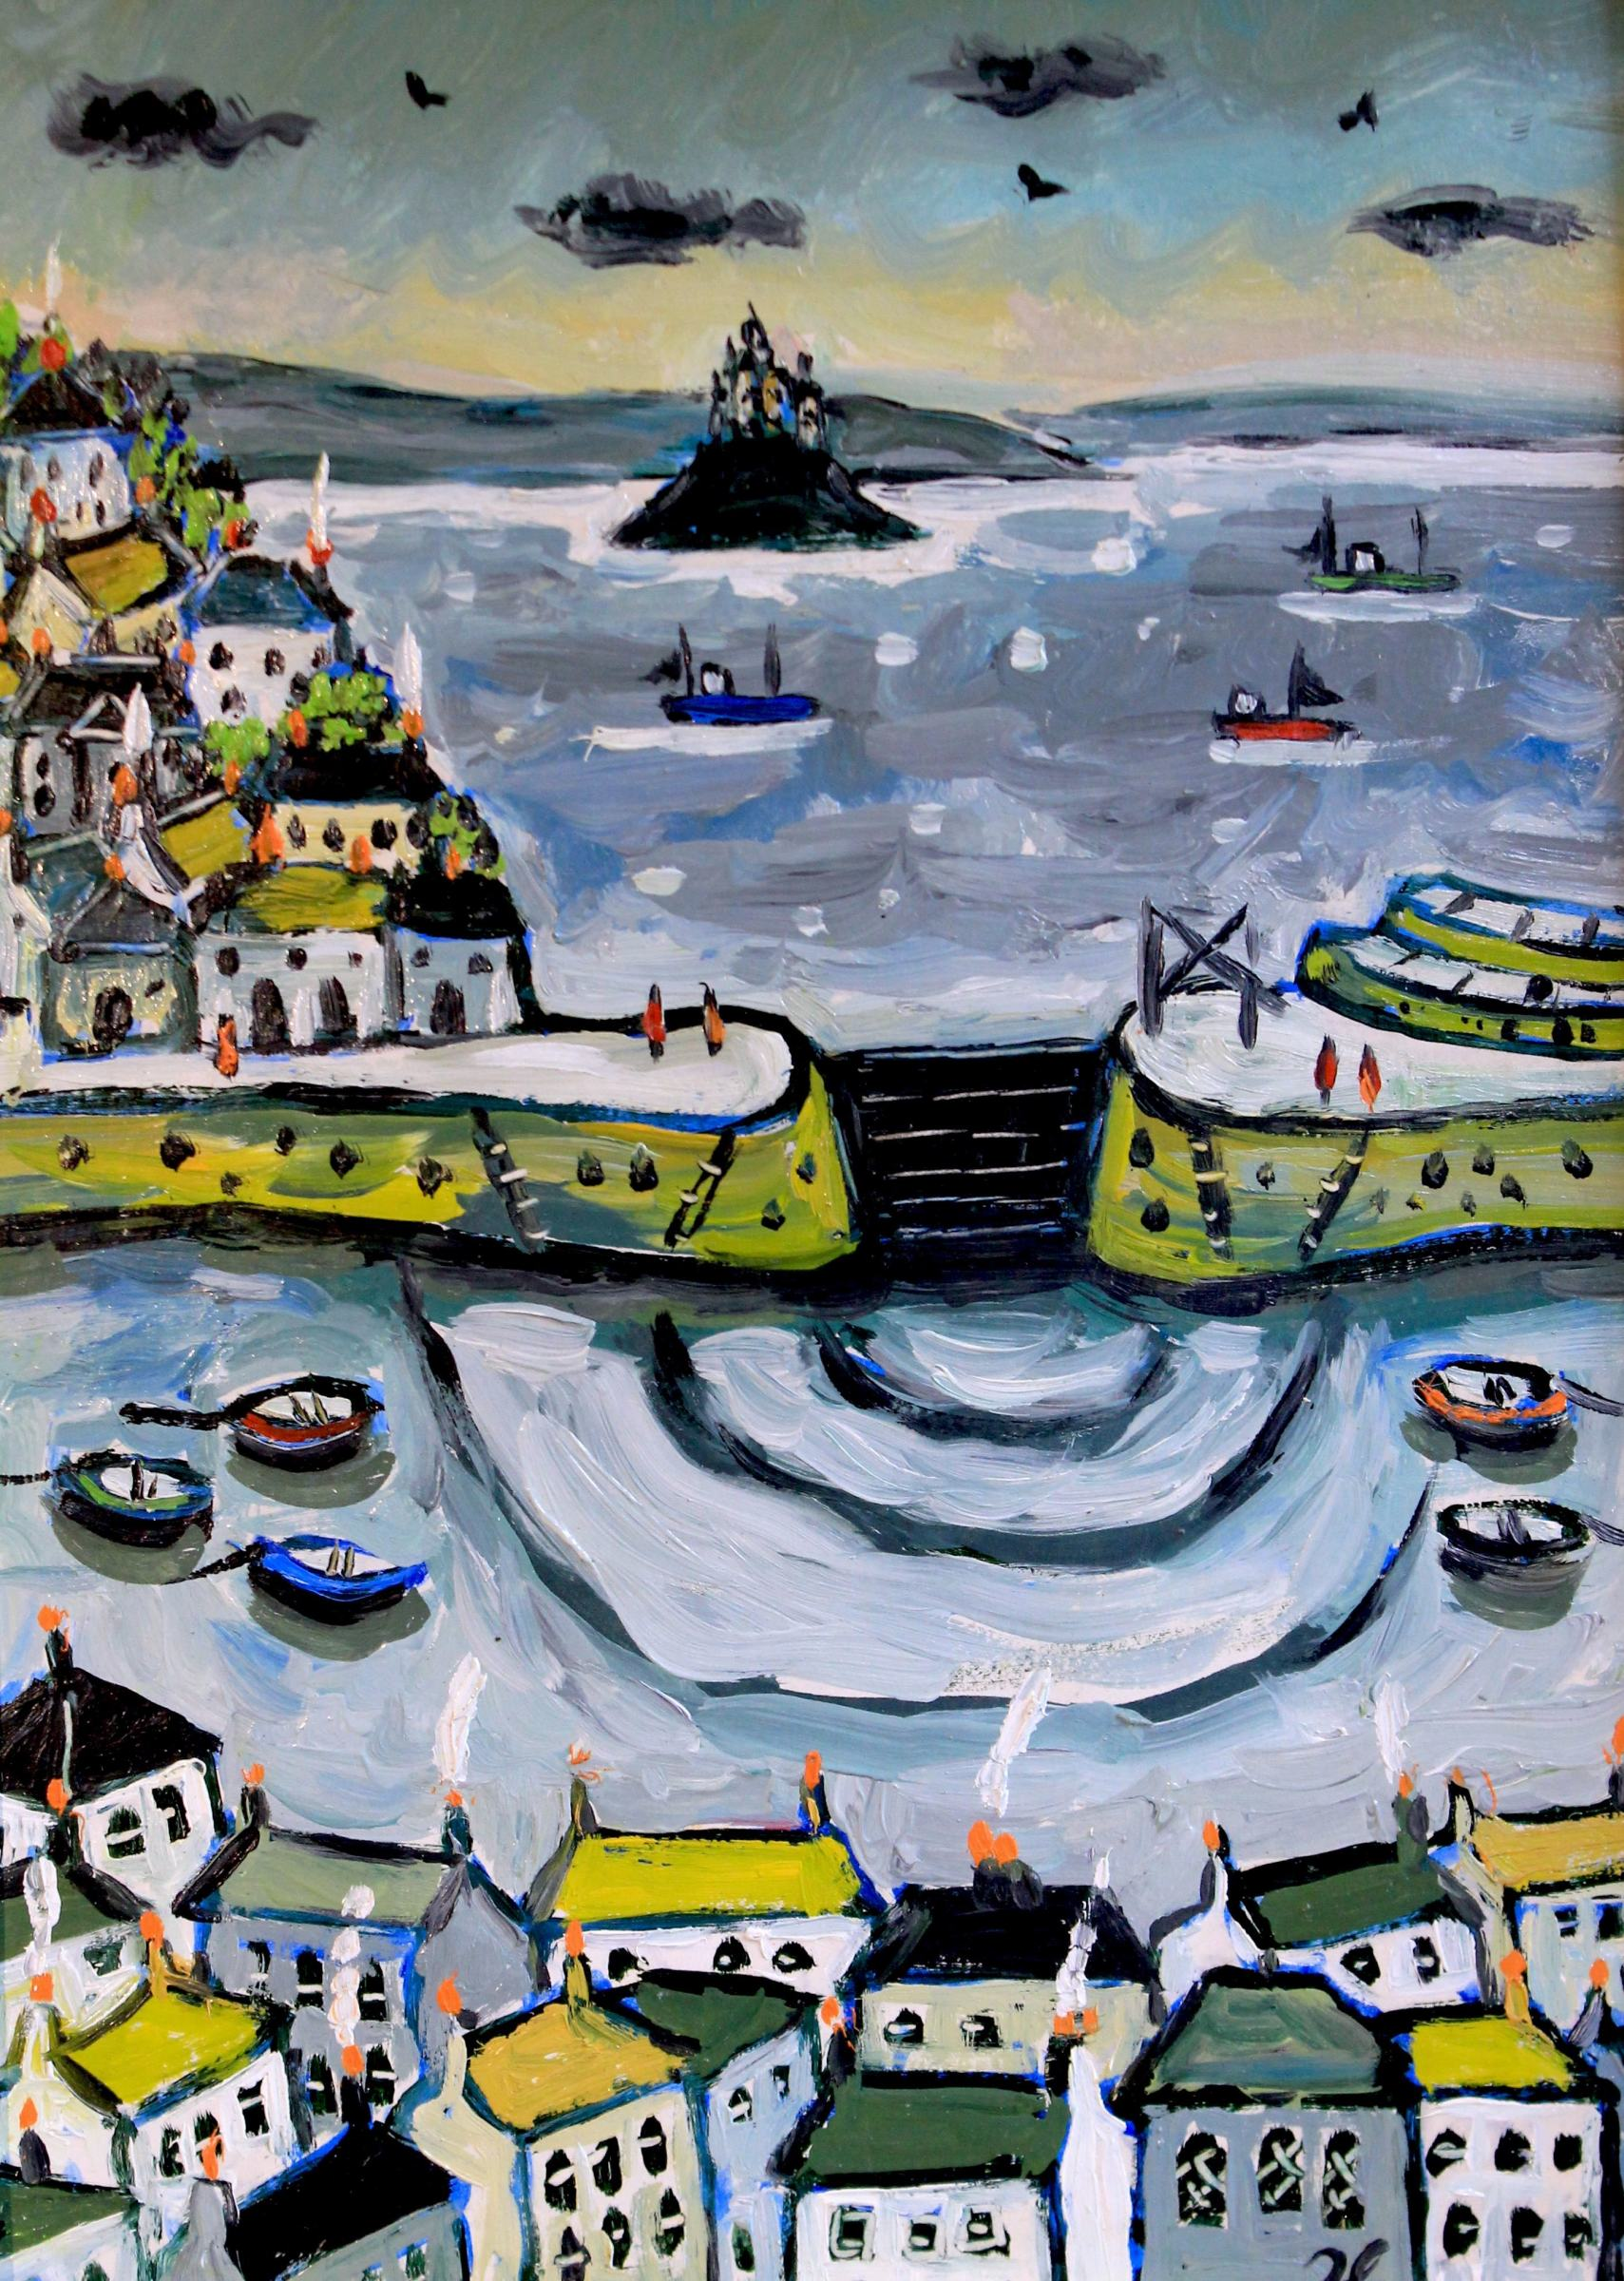 "<span class=""link fancybox-details-link""><a href=""/artists/140-joan-gilchrest/works/5203-joan-gilchrest-mousehole-in-winter/"">View Detail Page</a></span><div class=""artist""><strong>Joan Gilchrest</strong></div> 1918–2008 <div class=""title""><em>Mousehole in Winter</em></div> <div class=""signed_and_dated"">initialled 'JG' lower right</div> <div class=""medium"">oil on card</div> <div class=""dimensions"">18.7 x 14 cm</div><div class=""copyright_line"">© The Estate of Joan Gilchrest</div>"